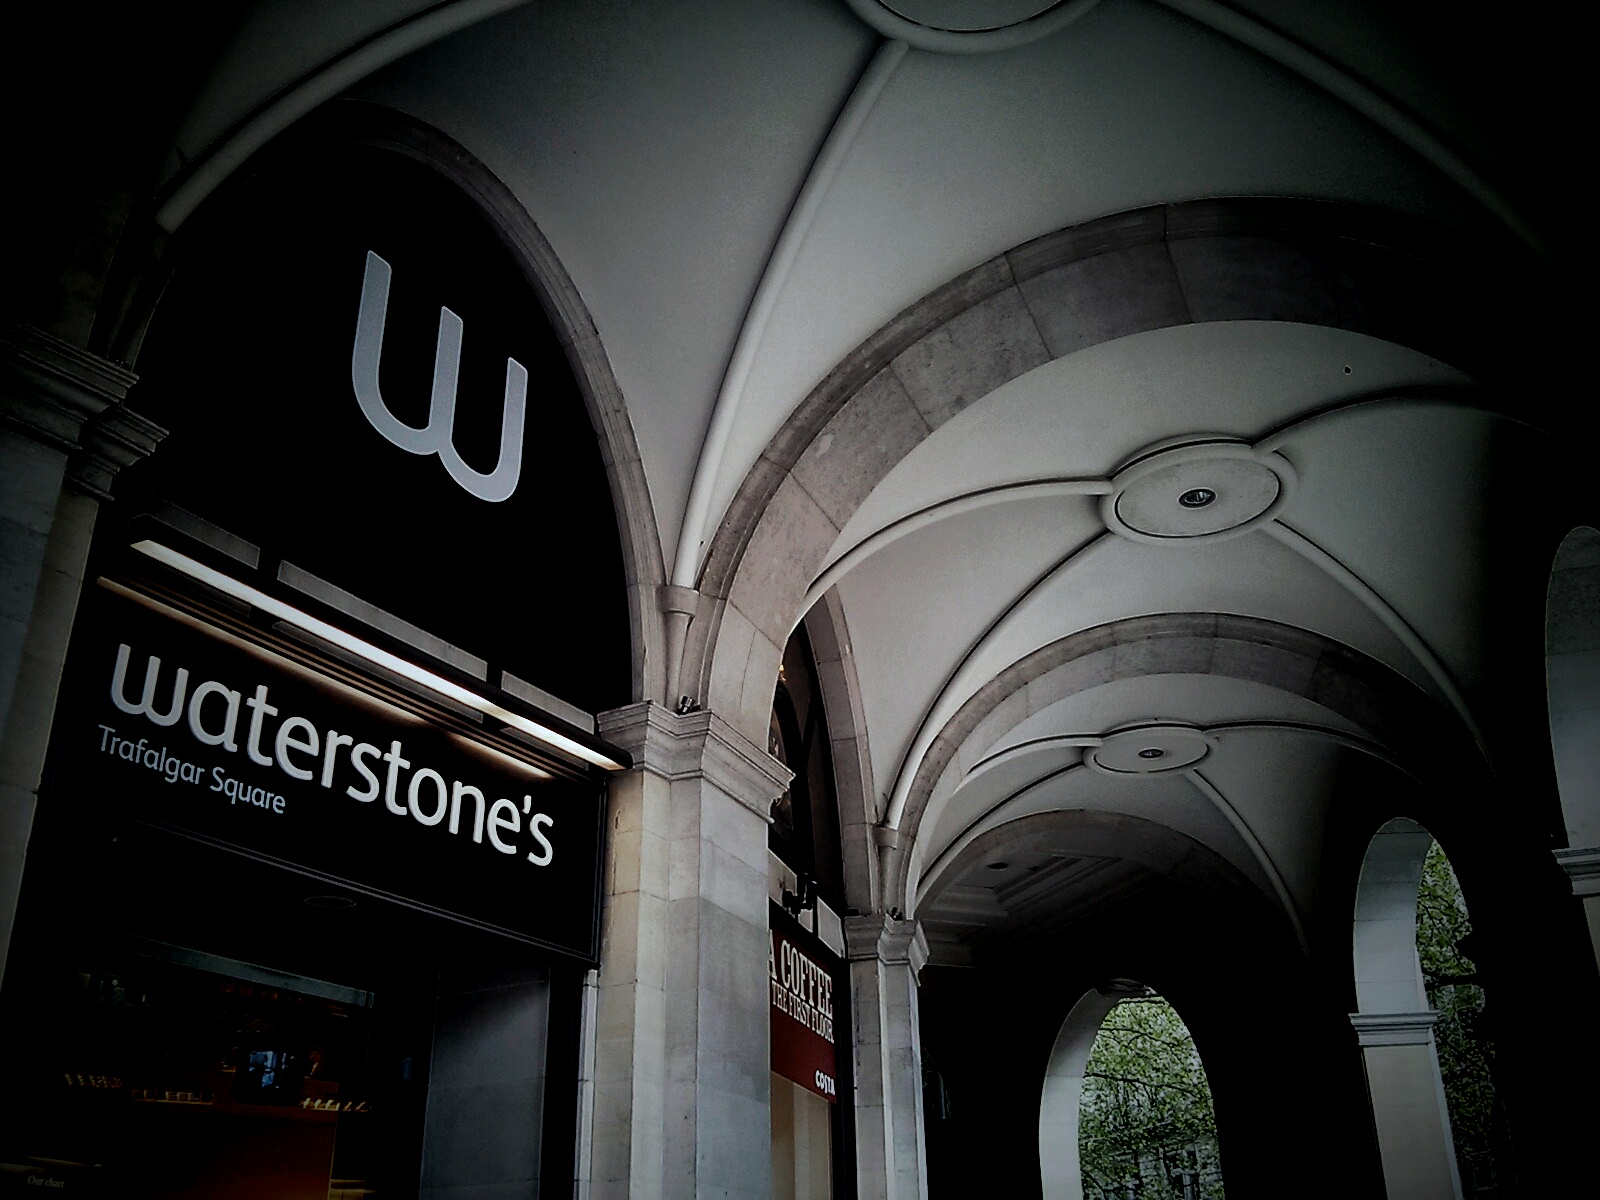 What would you do if you were locked inside Waterstones Trafalgar Square bookshop at night?